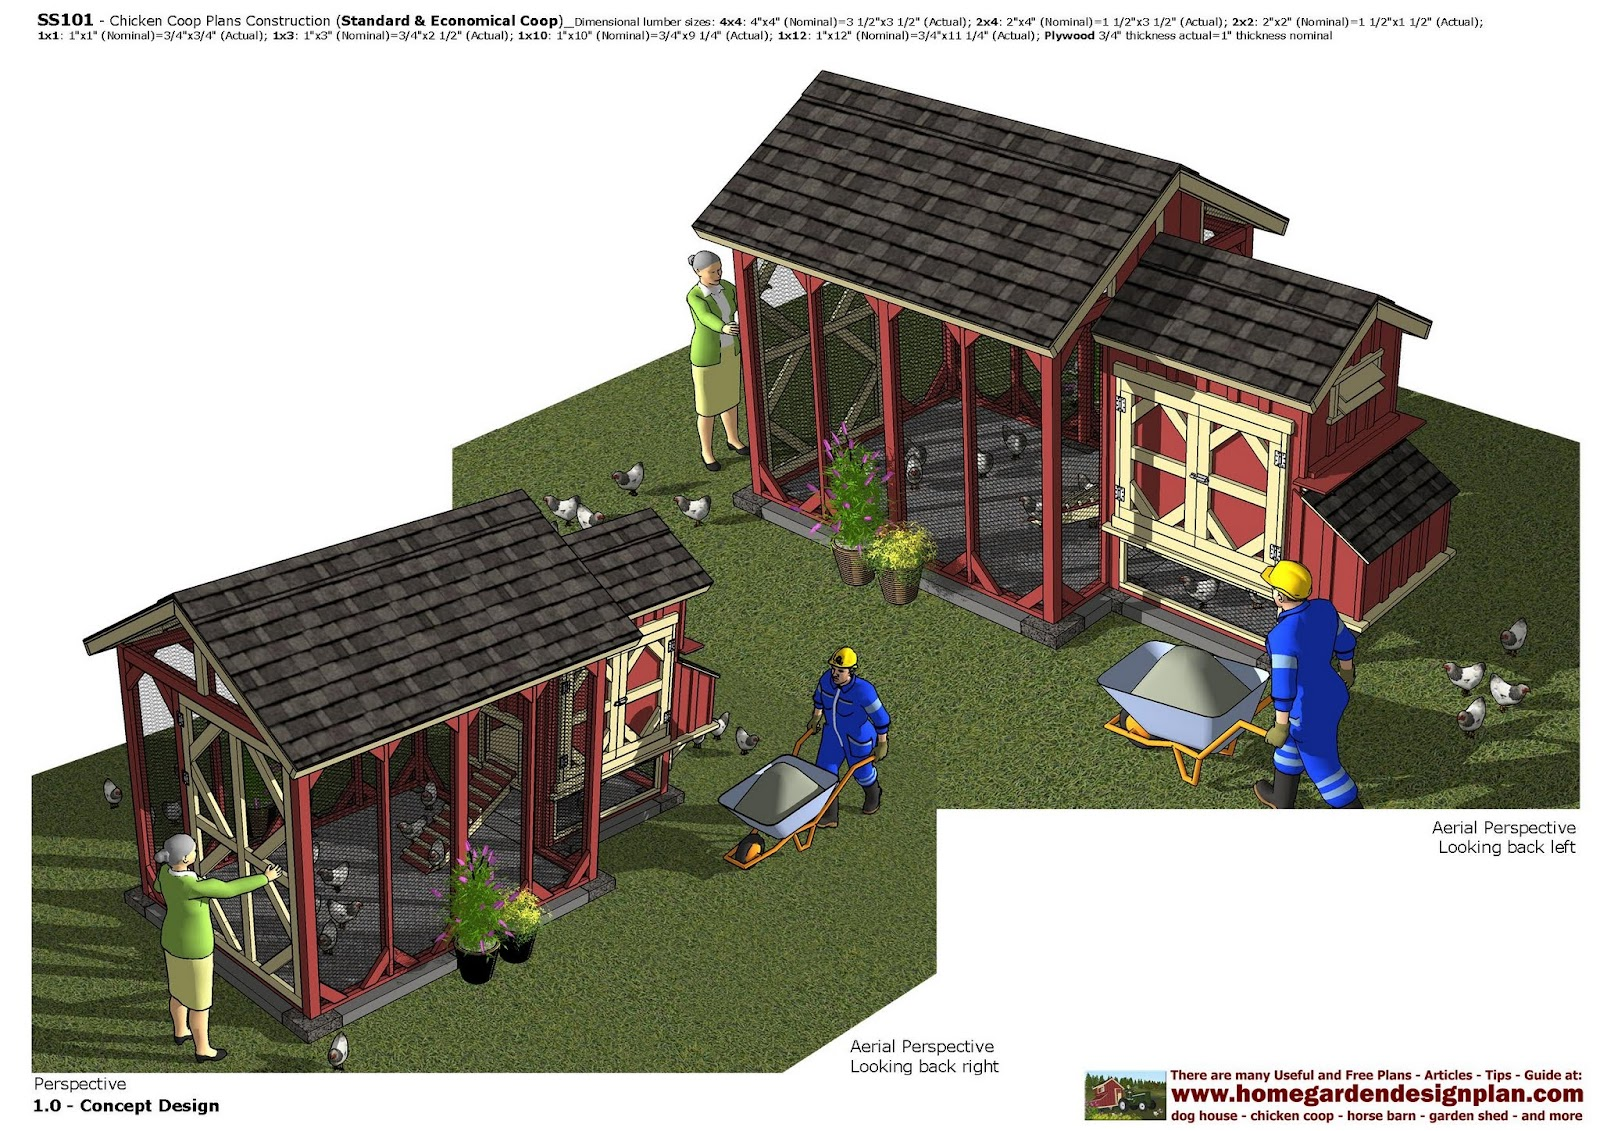 SS101 - Chicken Coop Plans Construction - Chicken Coop Design - How To